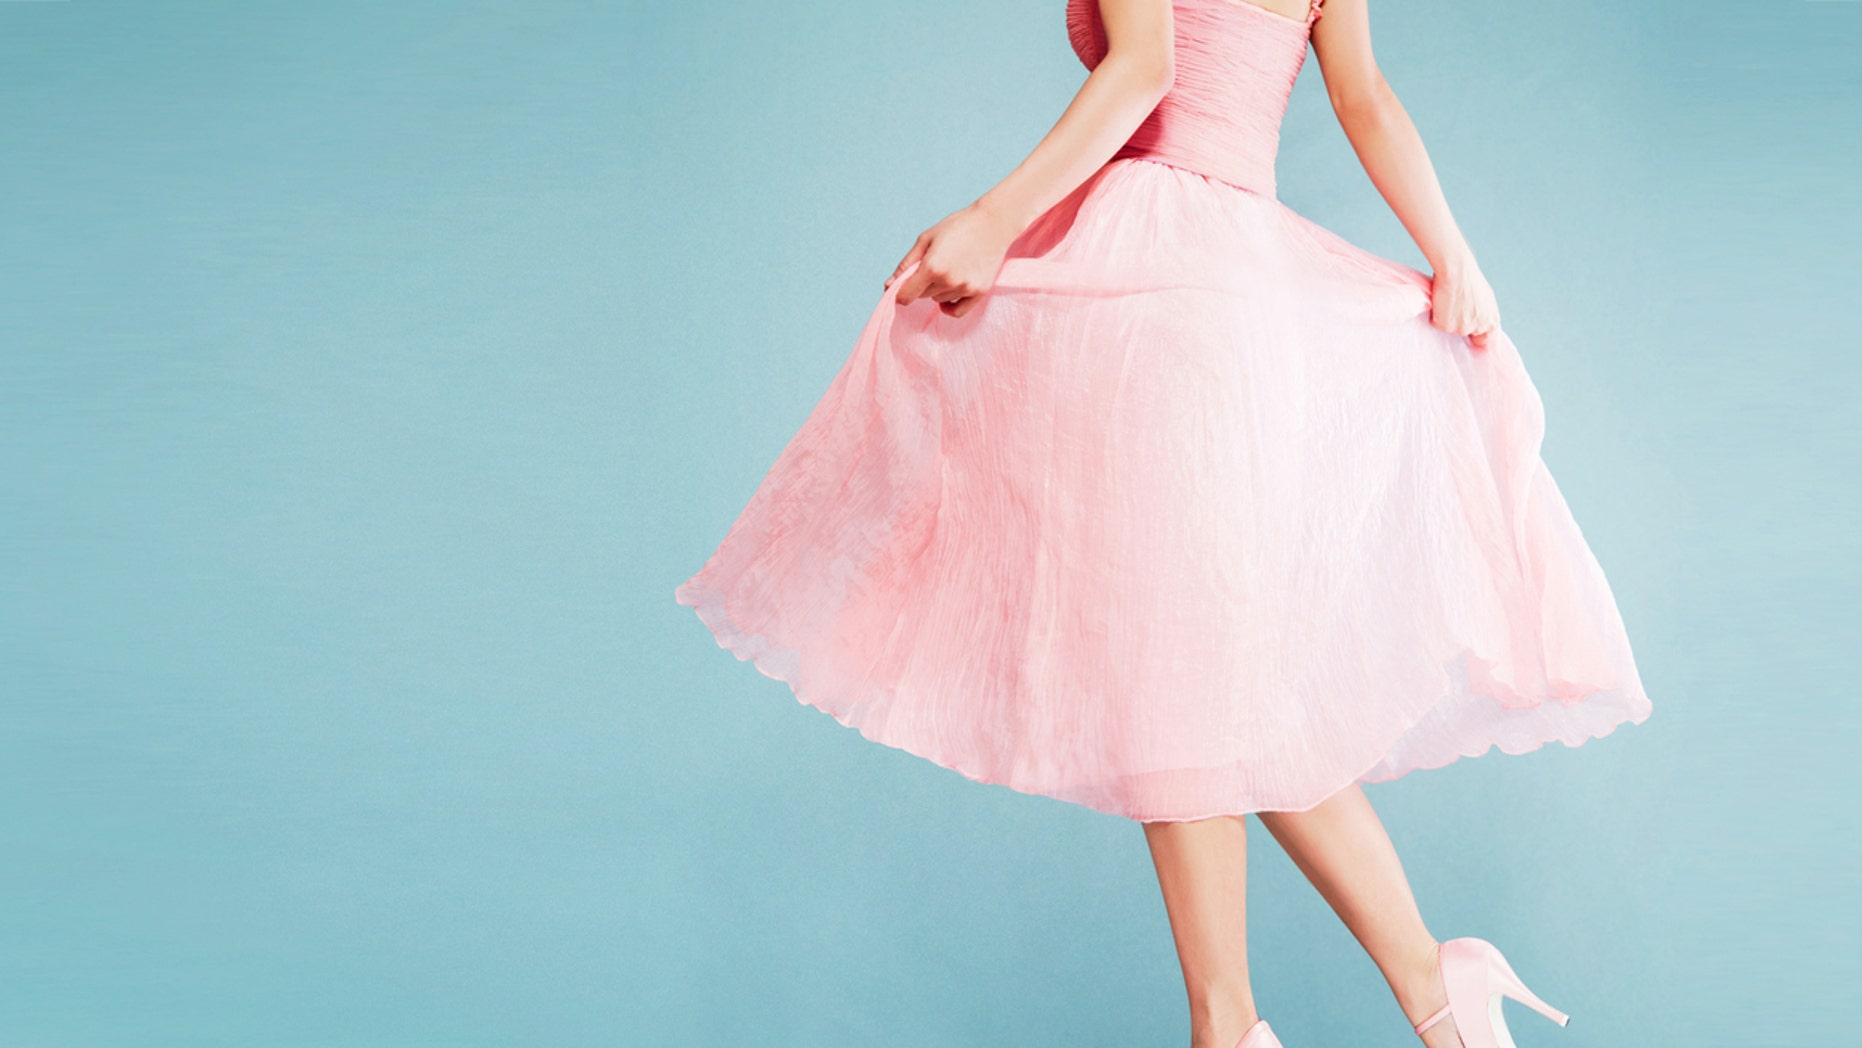 A woman on Facebook may have tried to scam her way into a free dress in the weirdest way.